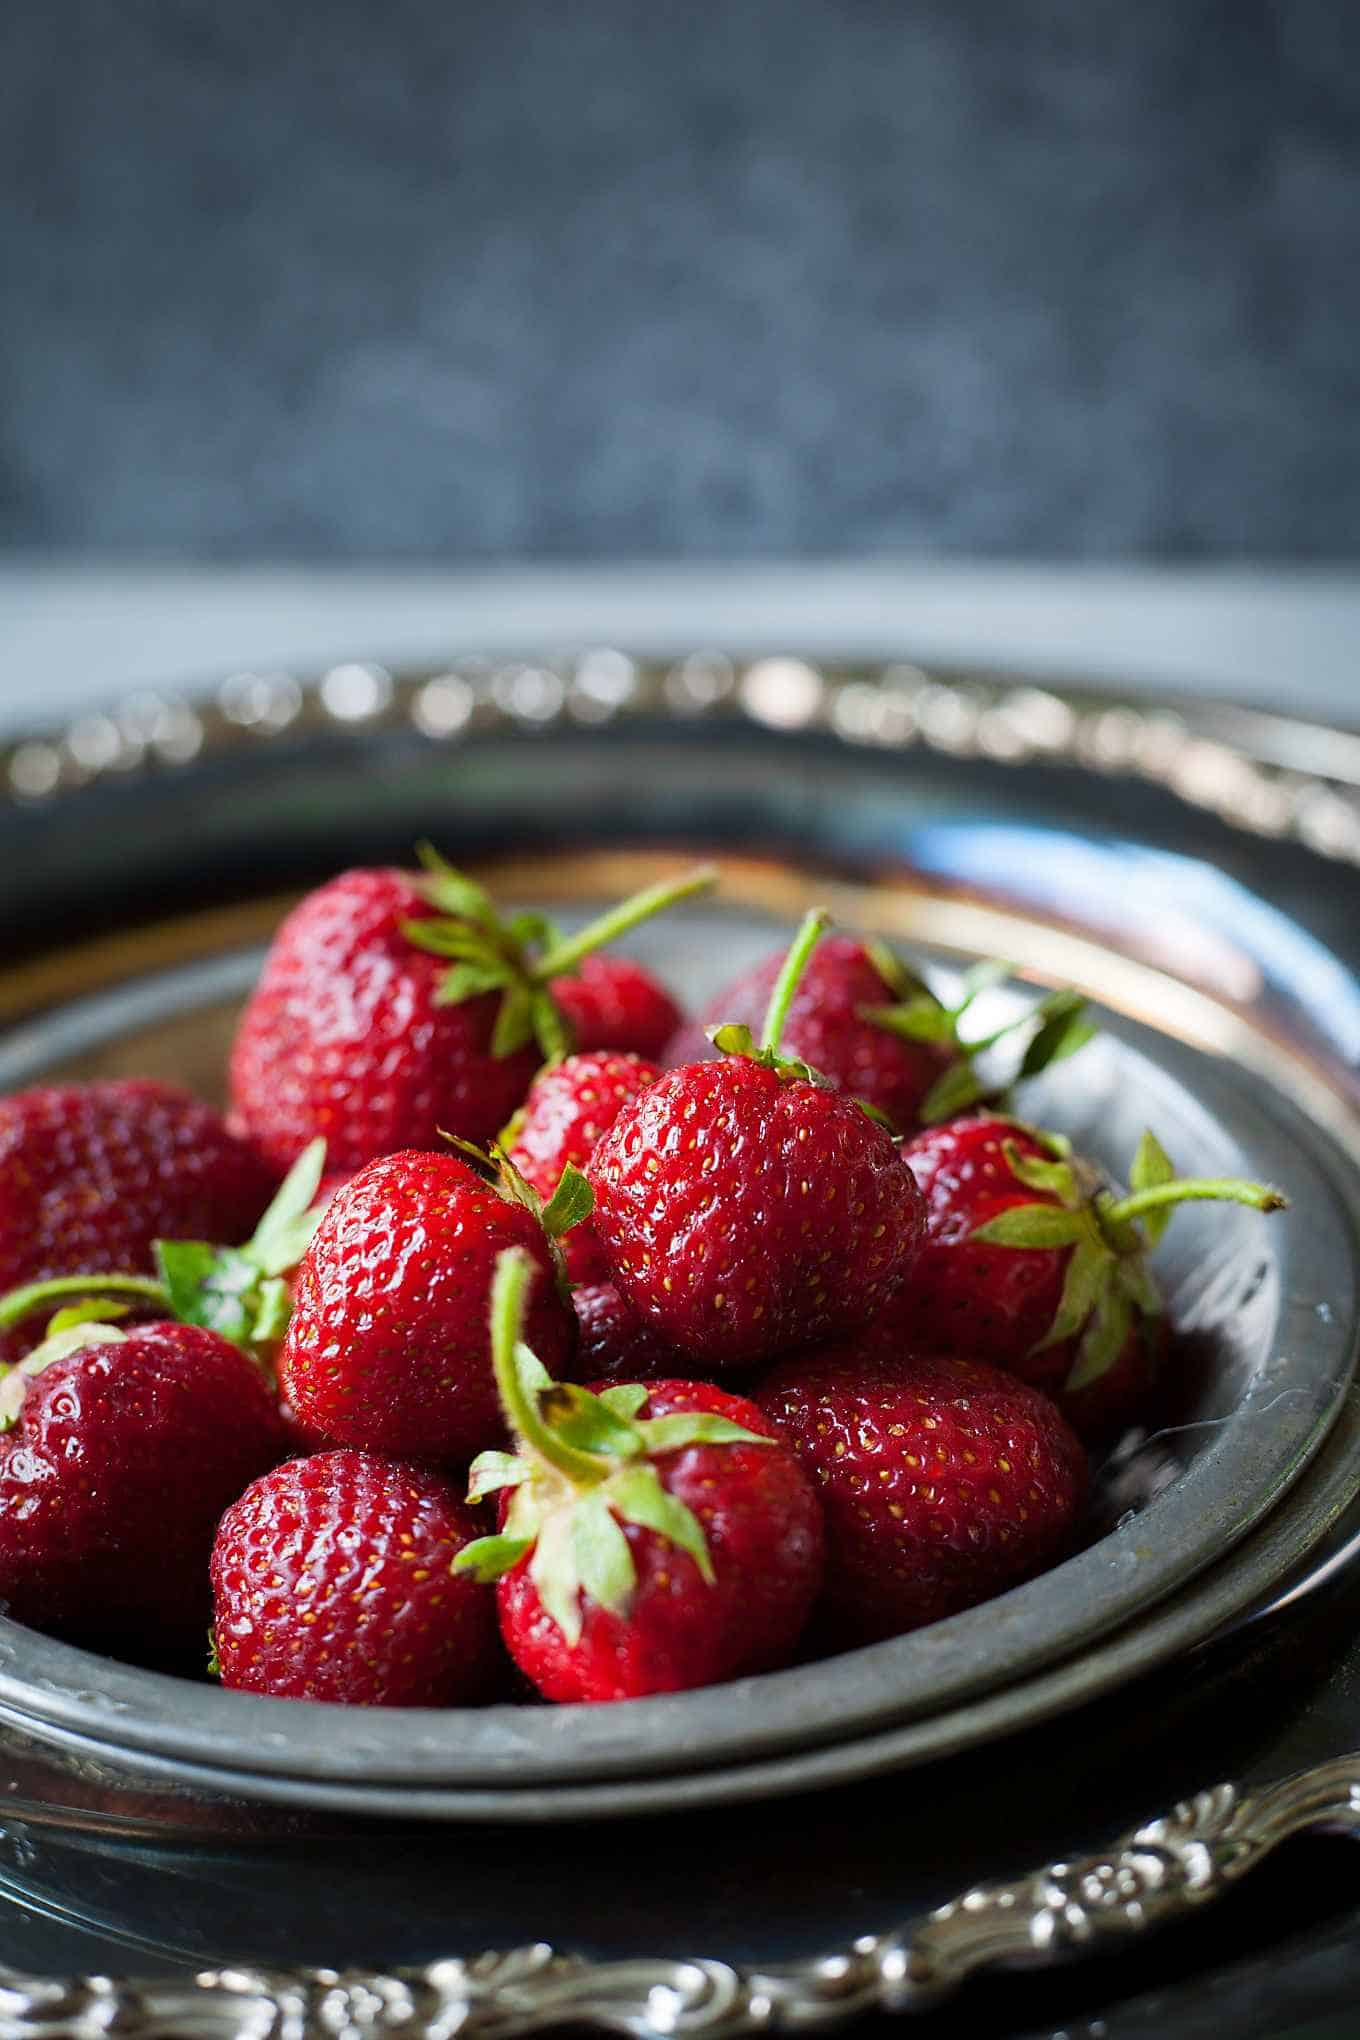 a pile of fresh strawberries on a platter